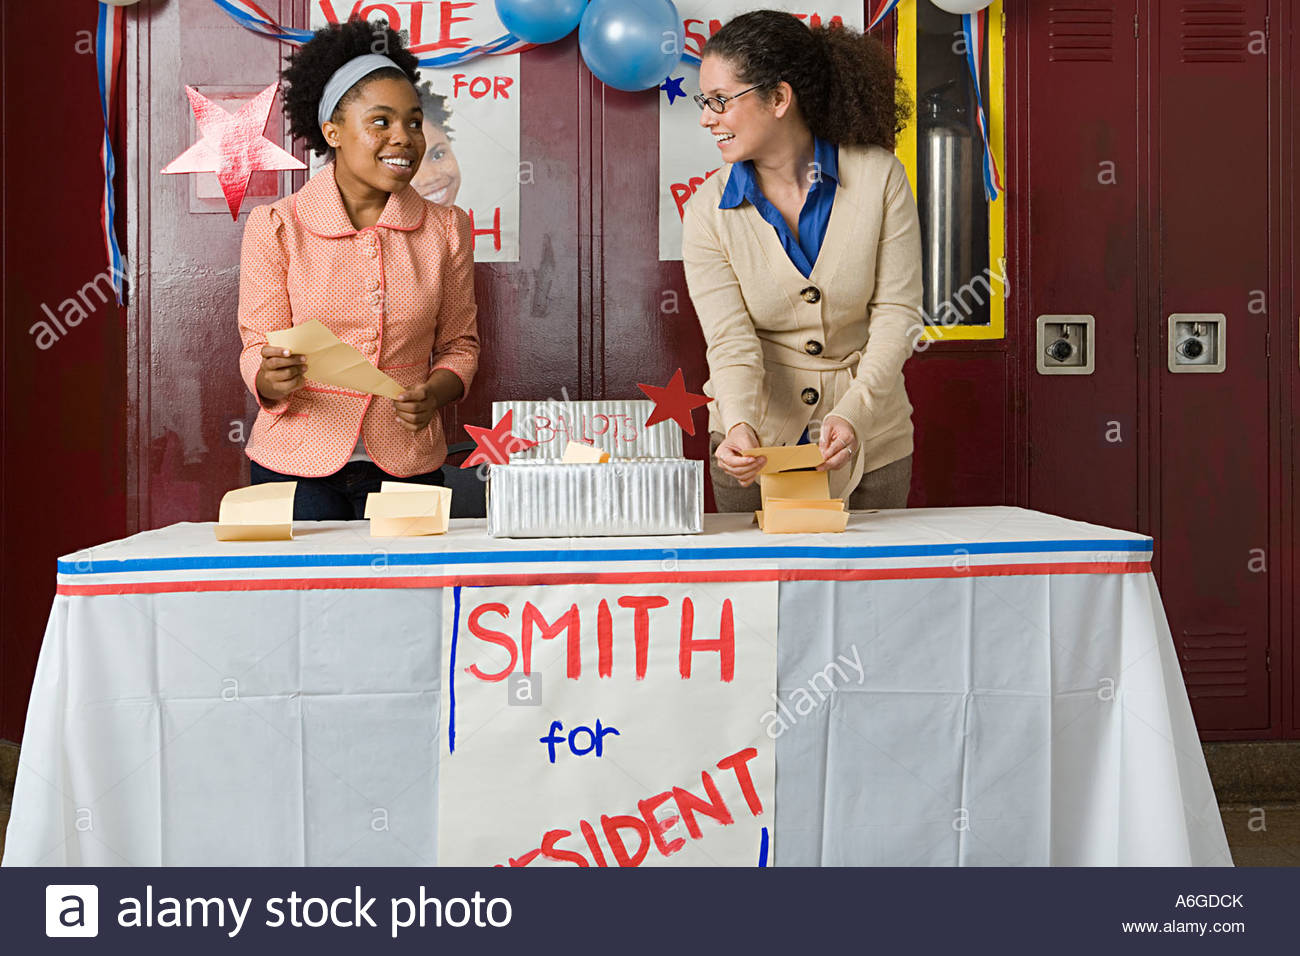 Girl and teacher counting votes - Stock Image